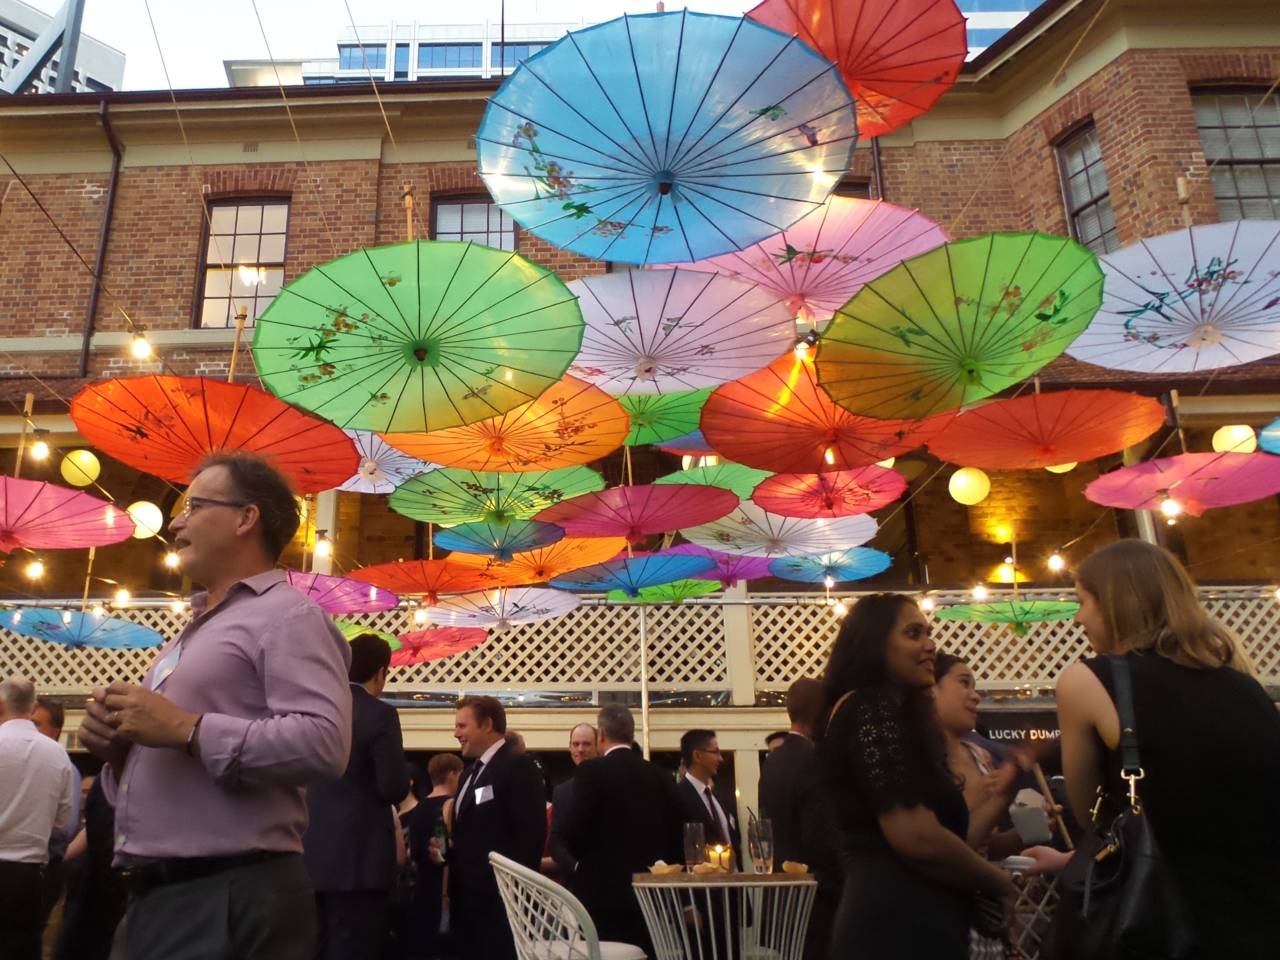 Cocktail event with colourful hanging upside down umbrellas for decoration on lower paved area at Lamont's Bishops House